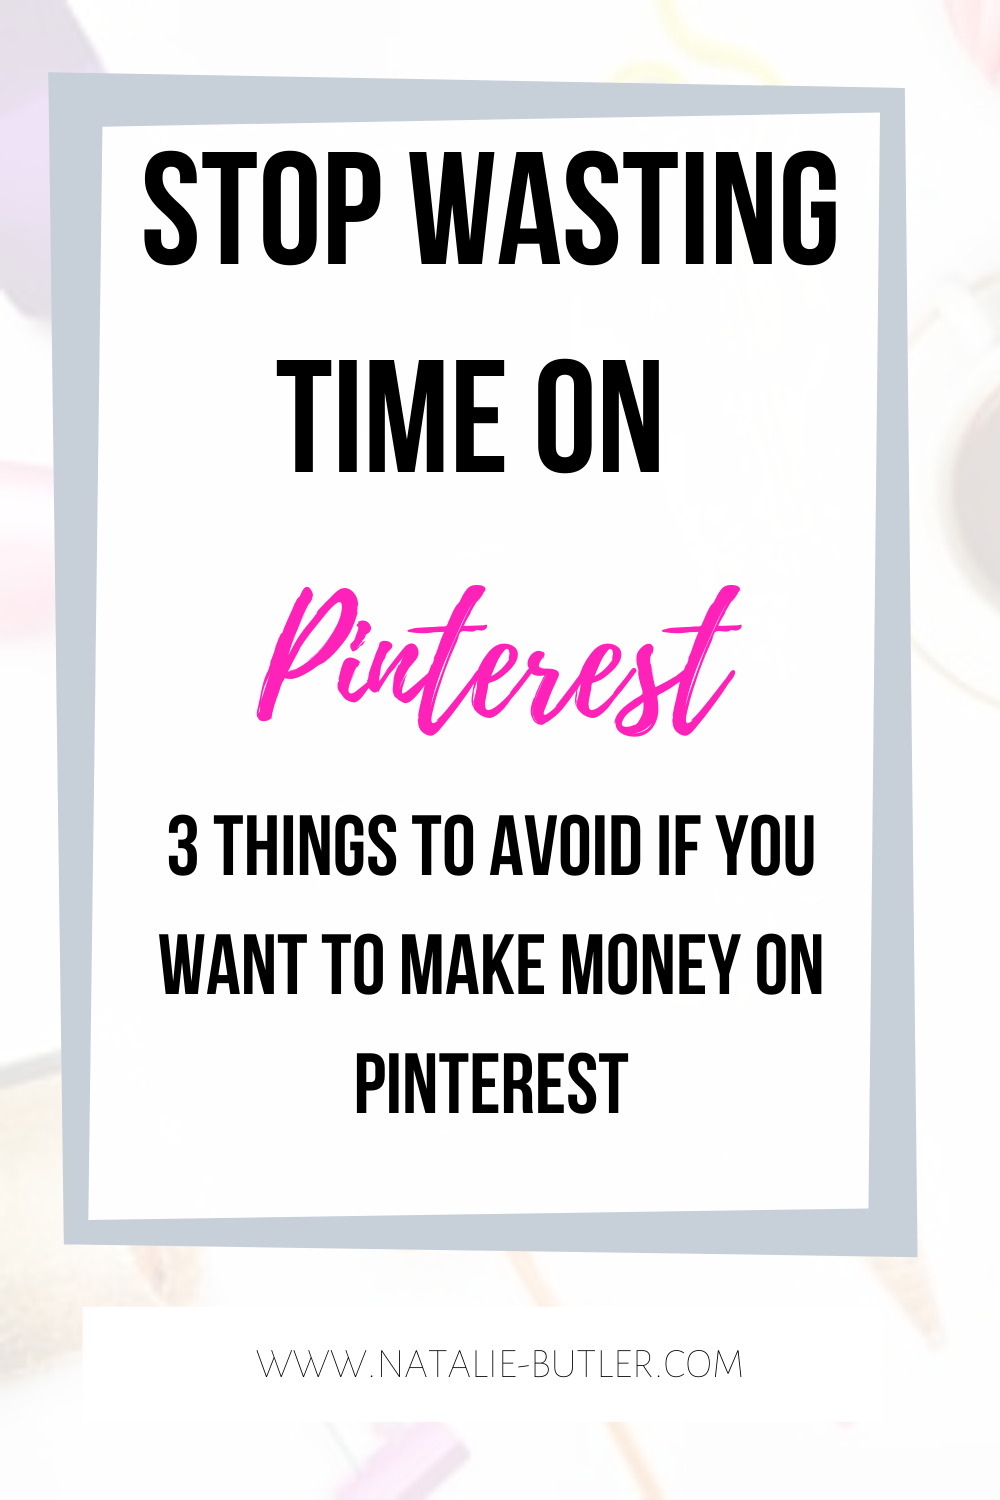 stop wasting time on Pinterest